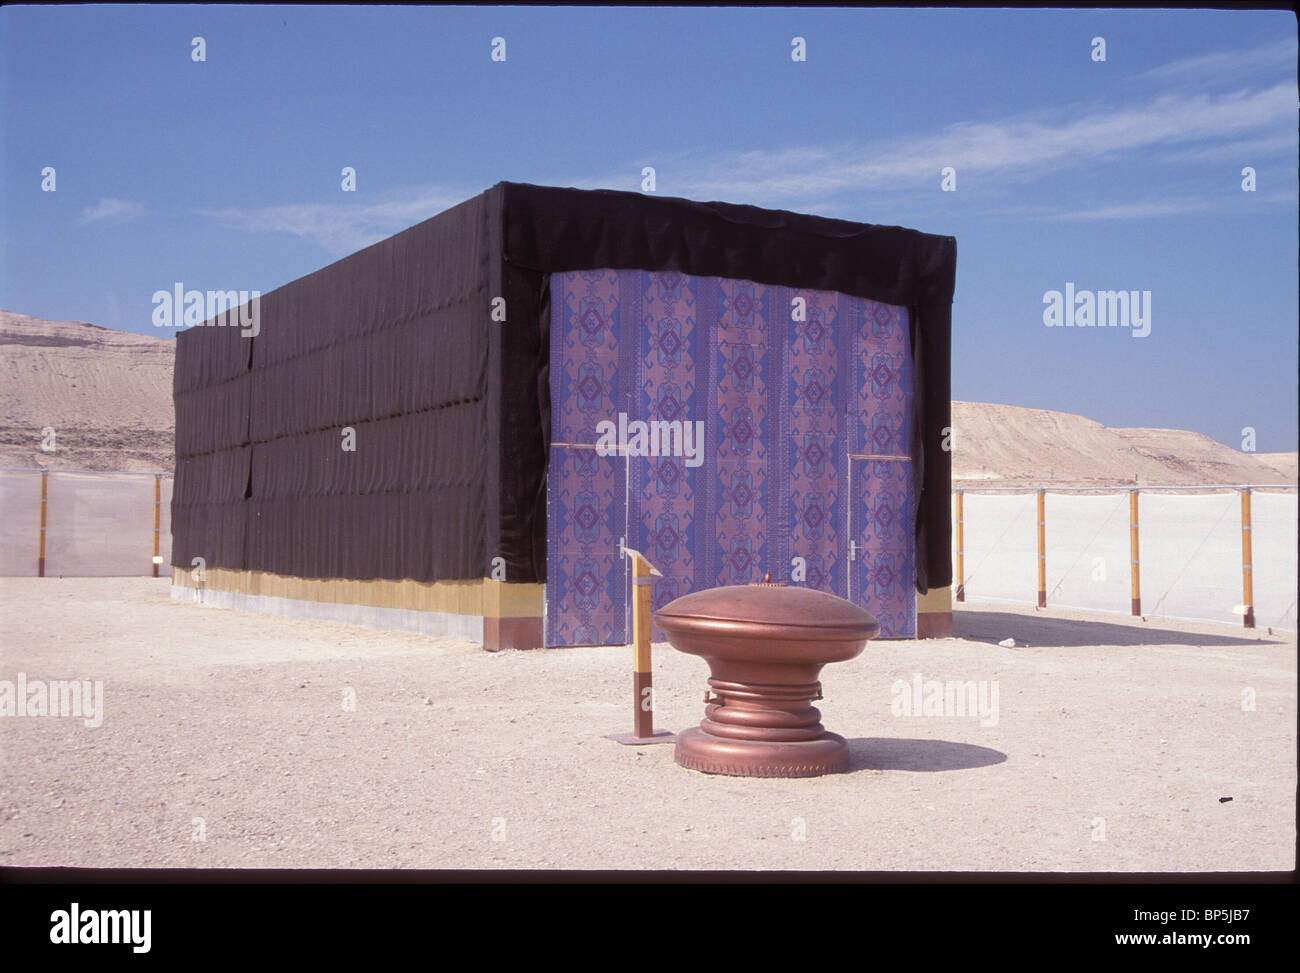 TABERNACLE TENT - THE PLACE OF WORSHIP WHICH THE GOD OF ISRAEL ORDERED MOSES TO BUILD IN SINAI (EXODUS 259) FROM WHERE IT WAS & TABERNACLE TENT - THE PLACE OF WORSHIP WHICH THE GOD OF ISRAEL ...